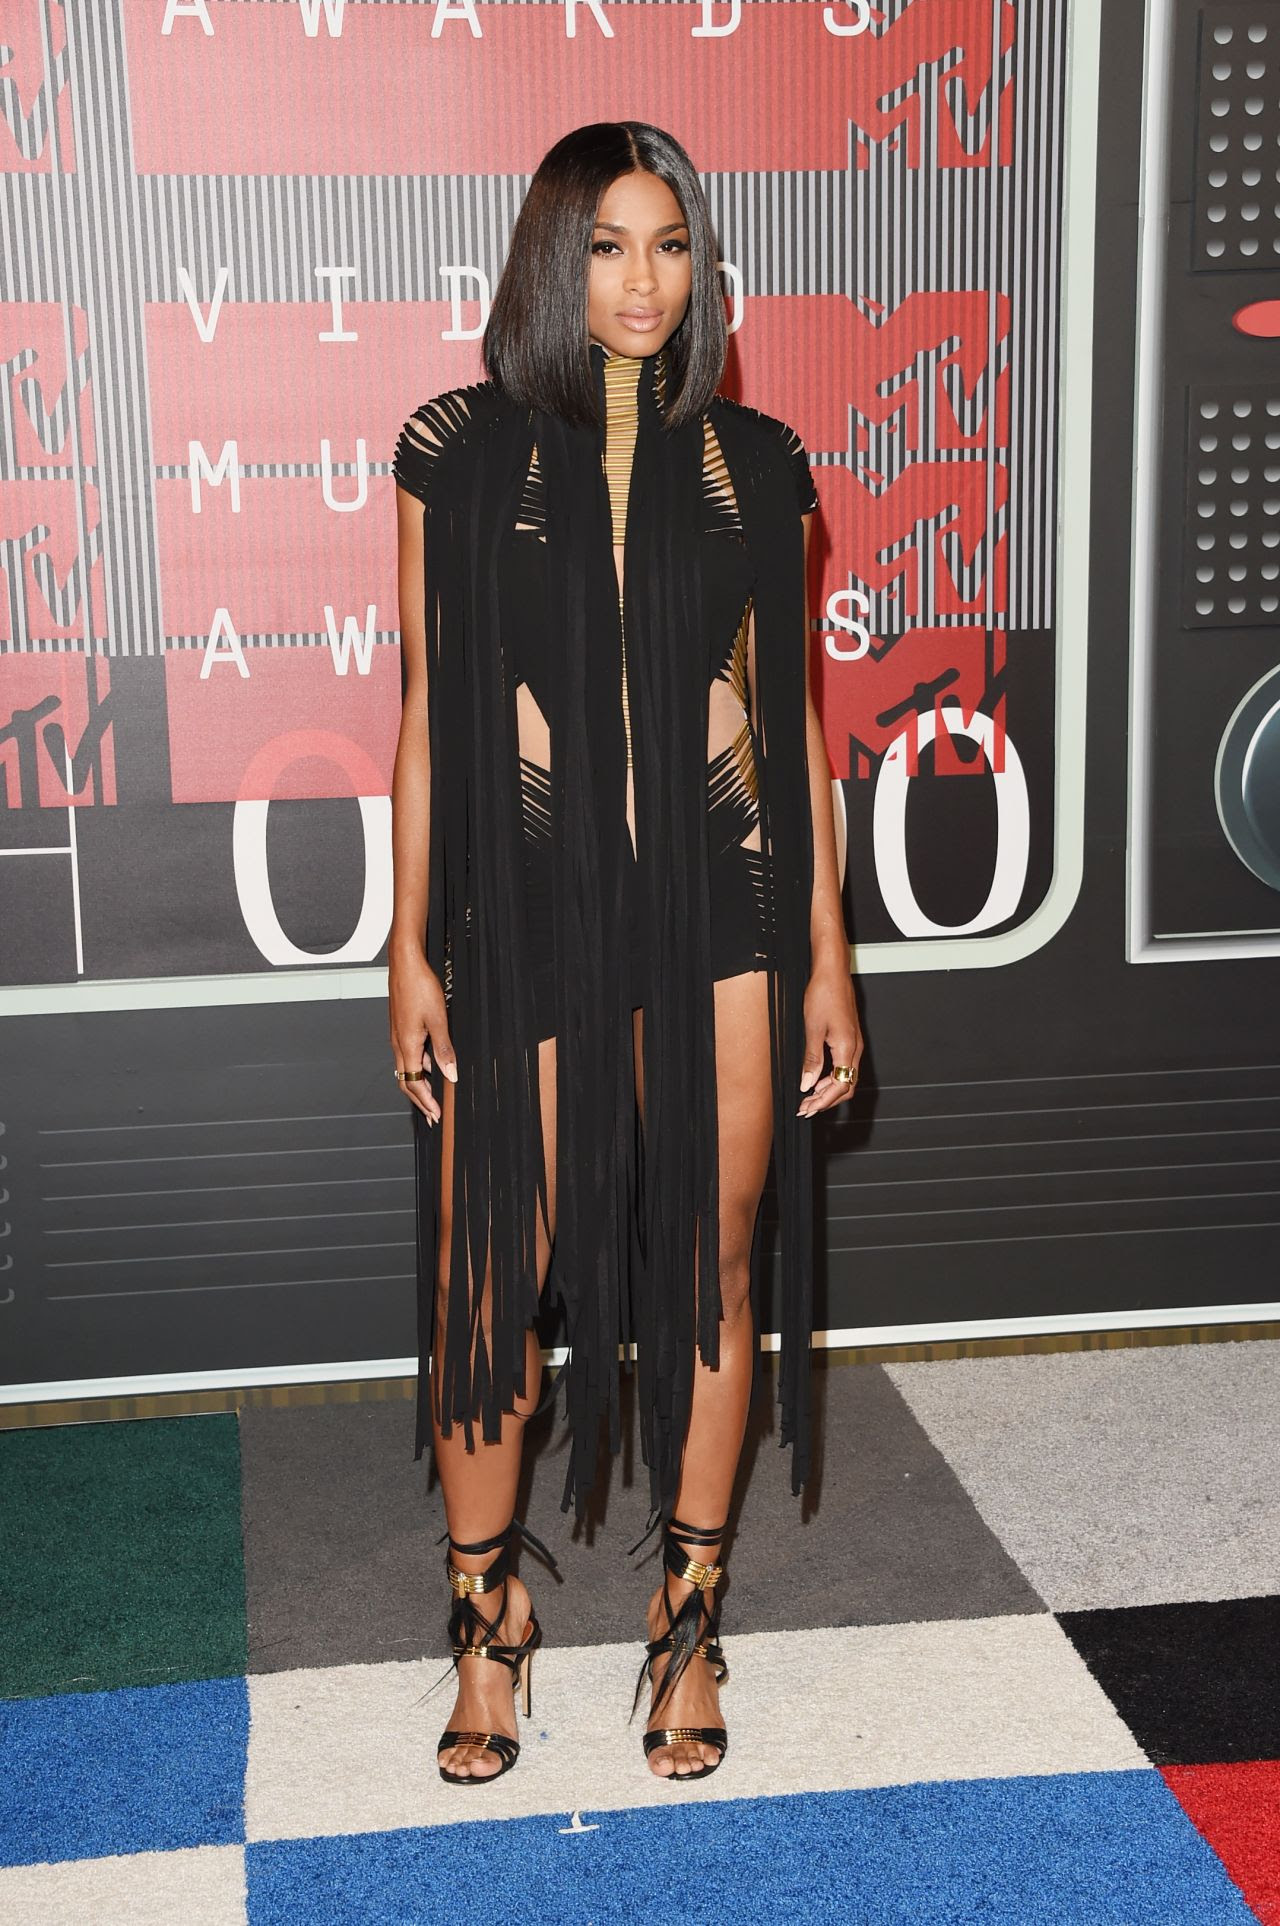 http://celebmafia.com/wp-content/uploads/2015/08/ciara-2015-mtv-video-music-awards-at-microsoft-theater-in-los-angeles_5.jpg